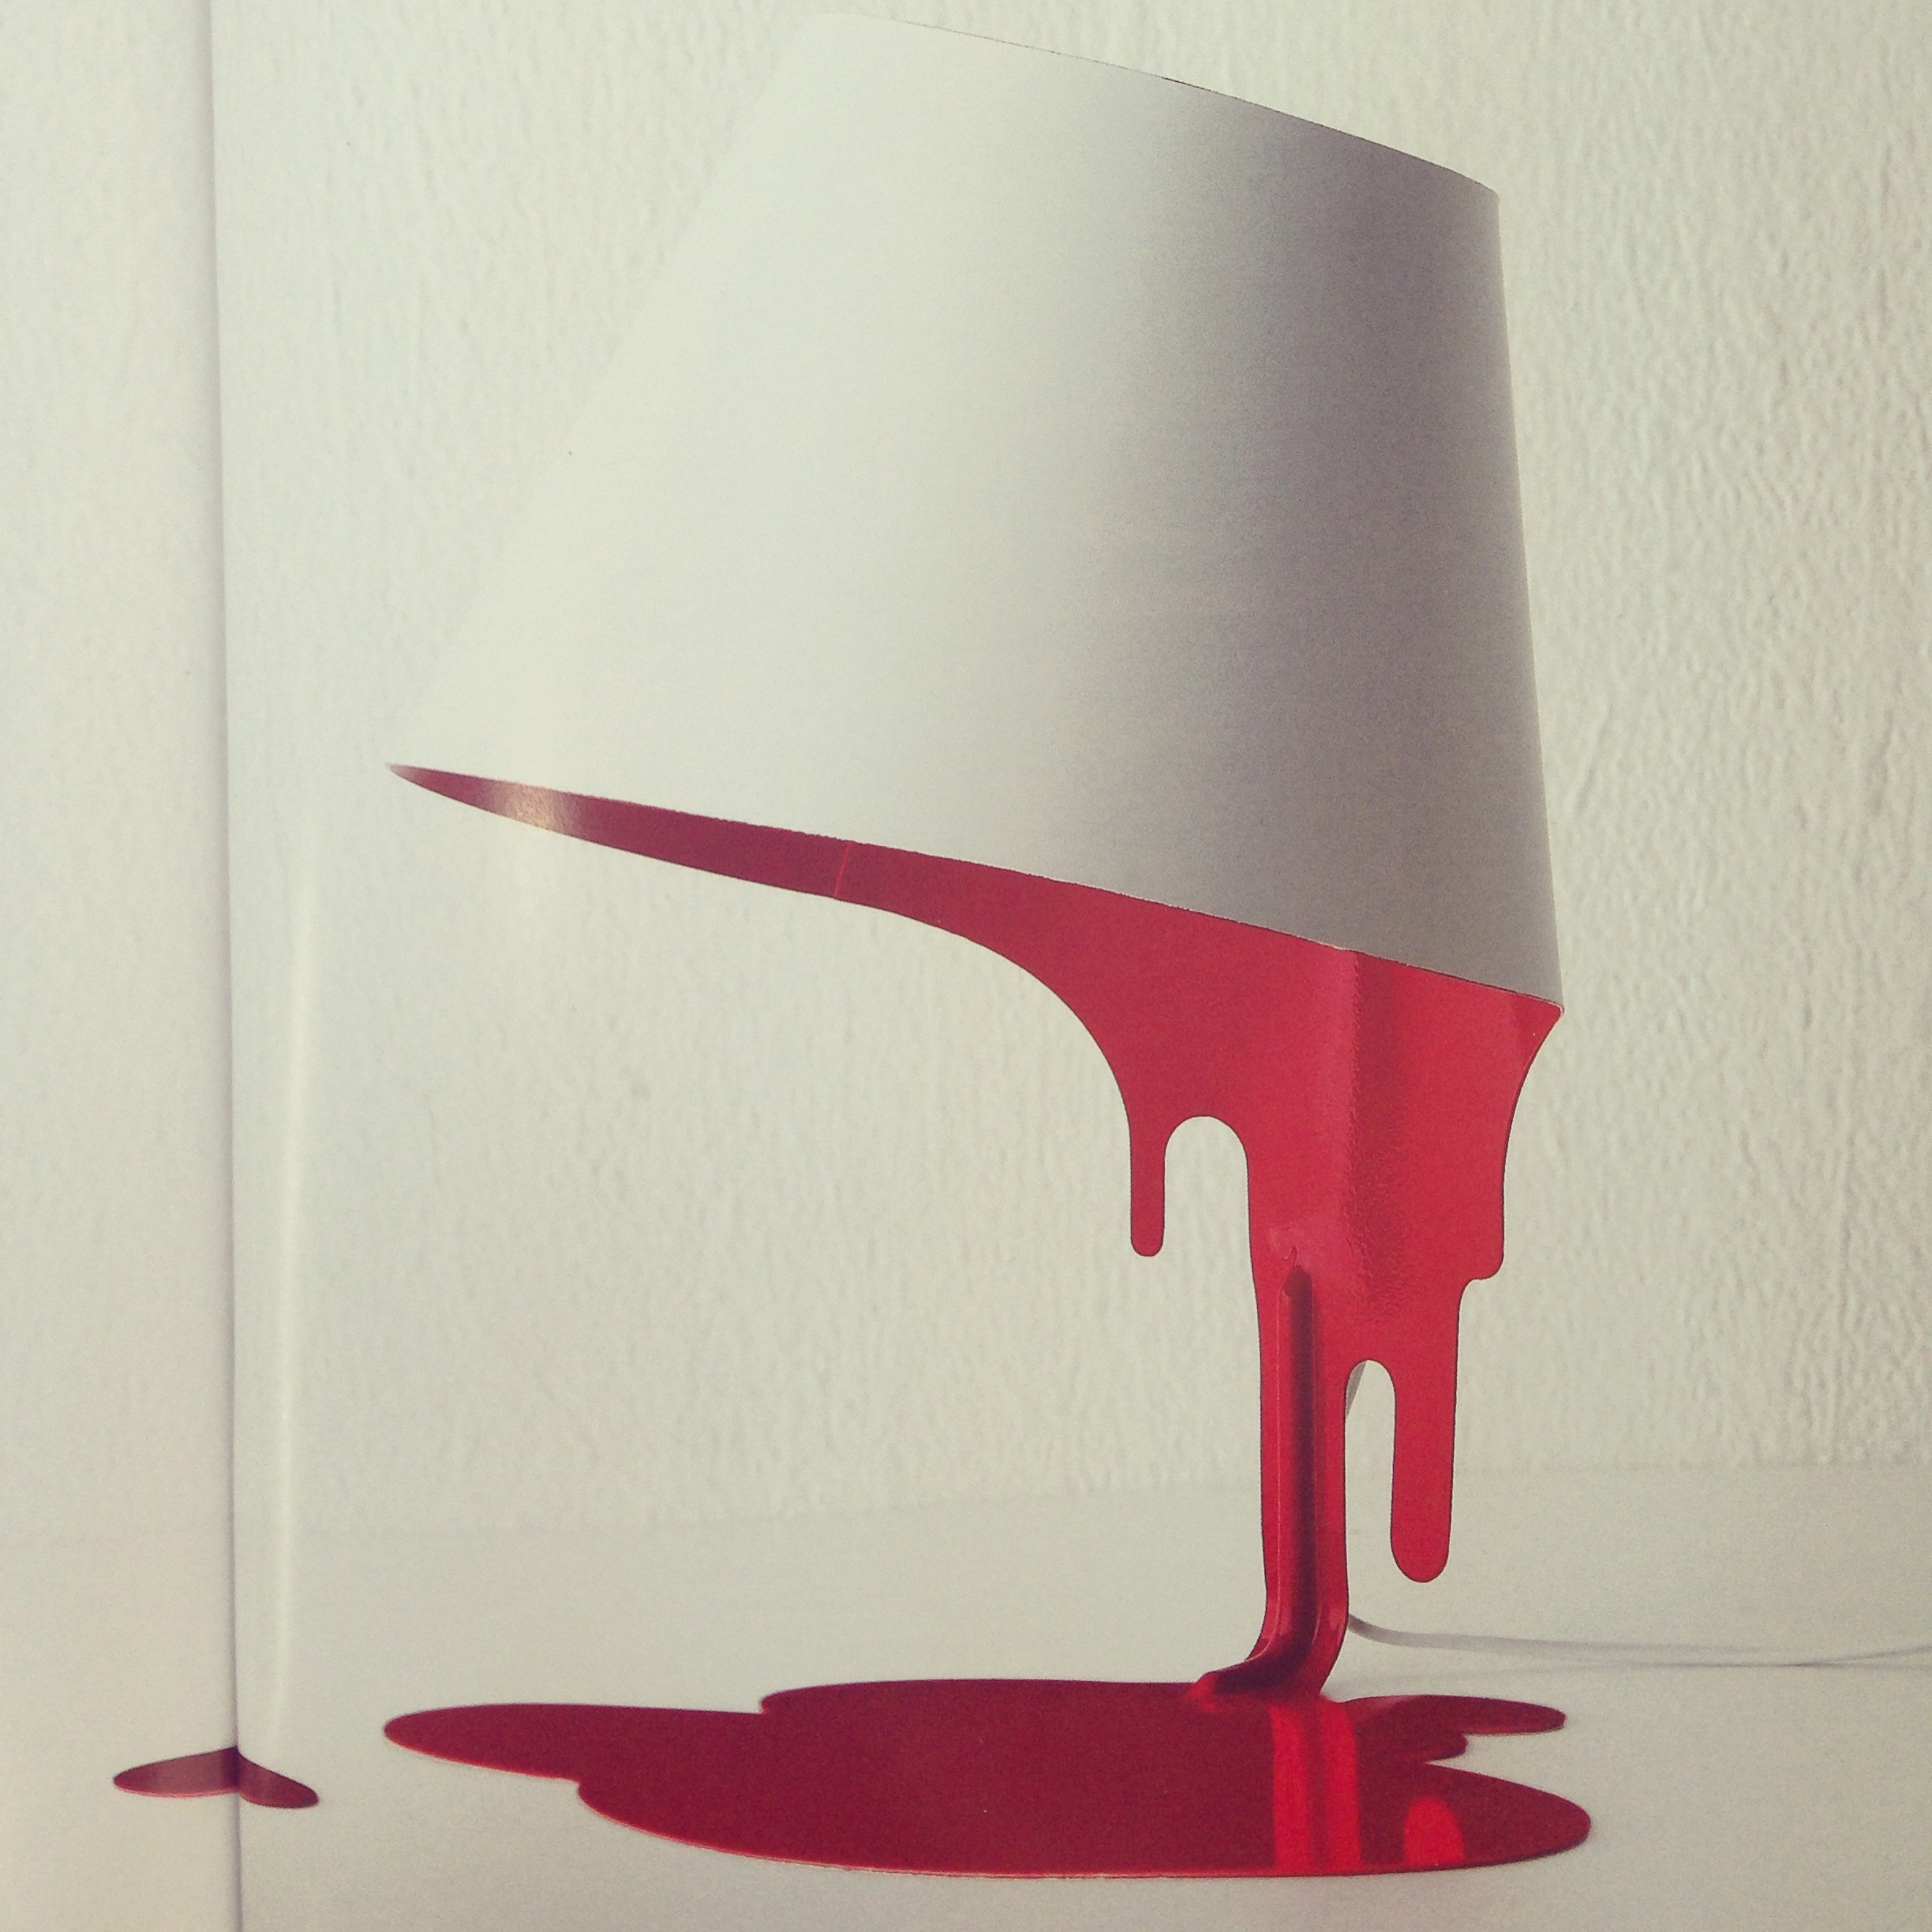 Kouichi Okamoto's Liquid Lamp is somewhat sinister in appearance, and seems to be melting before your eyes